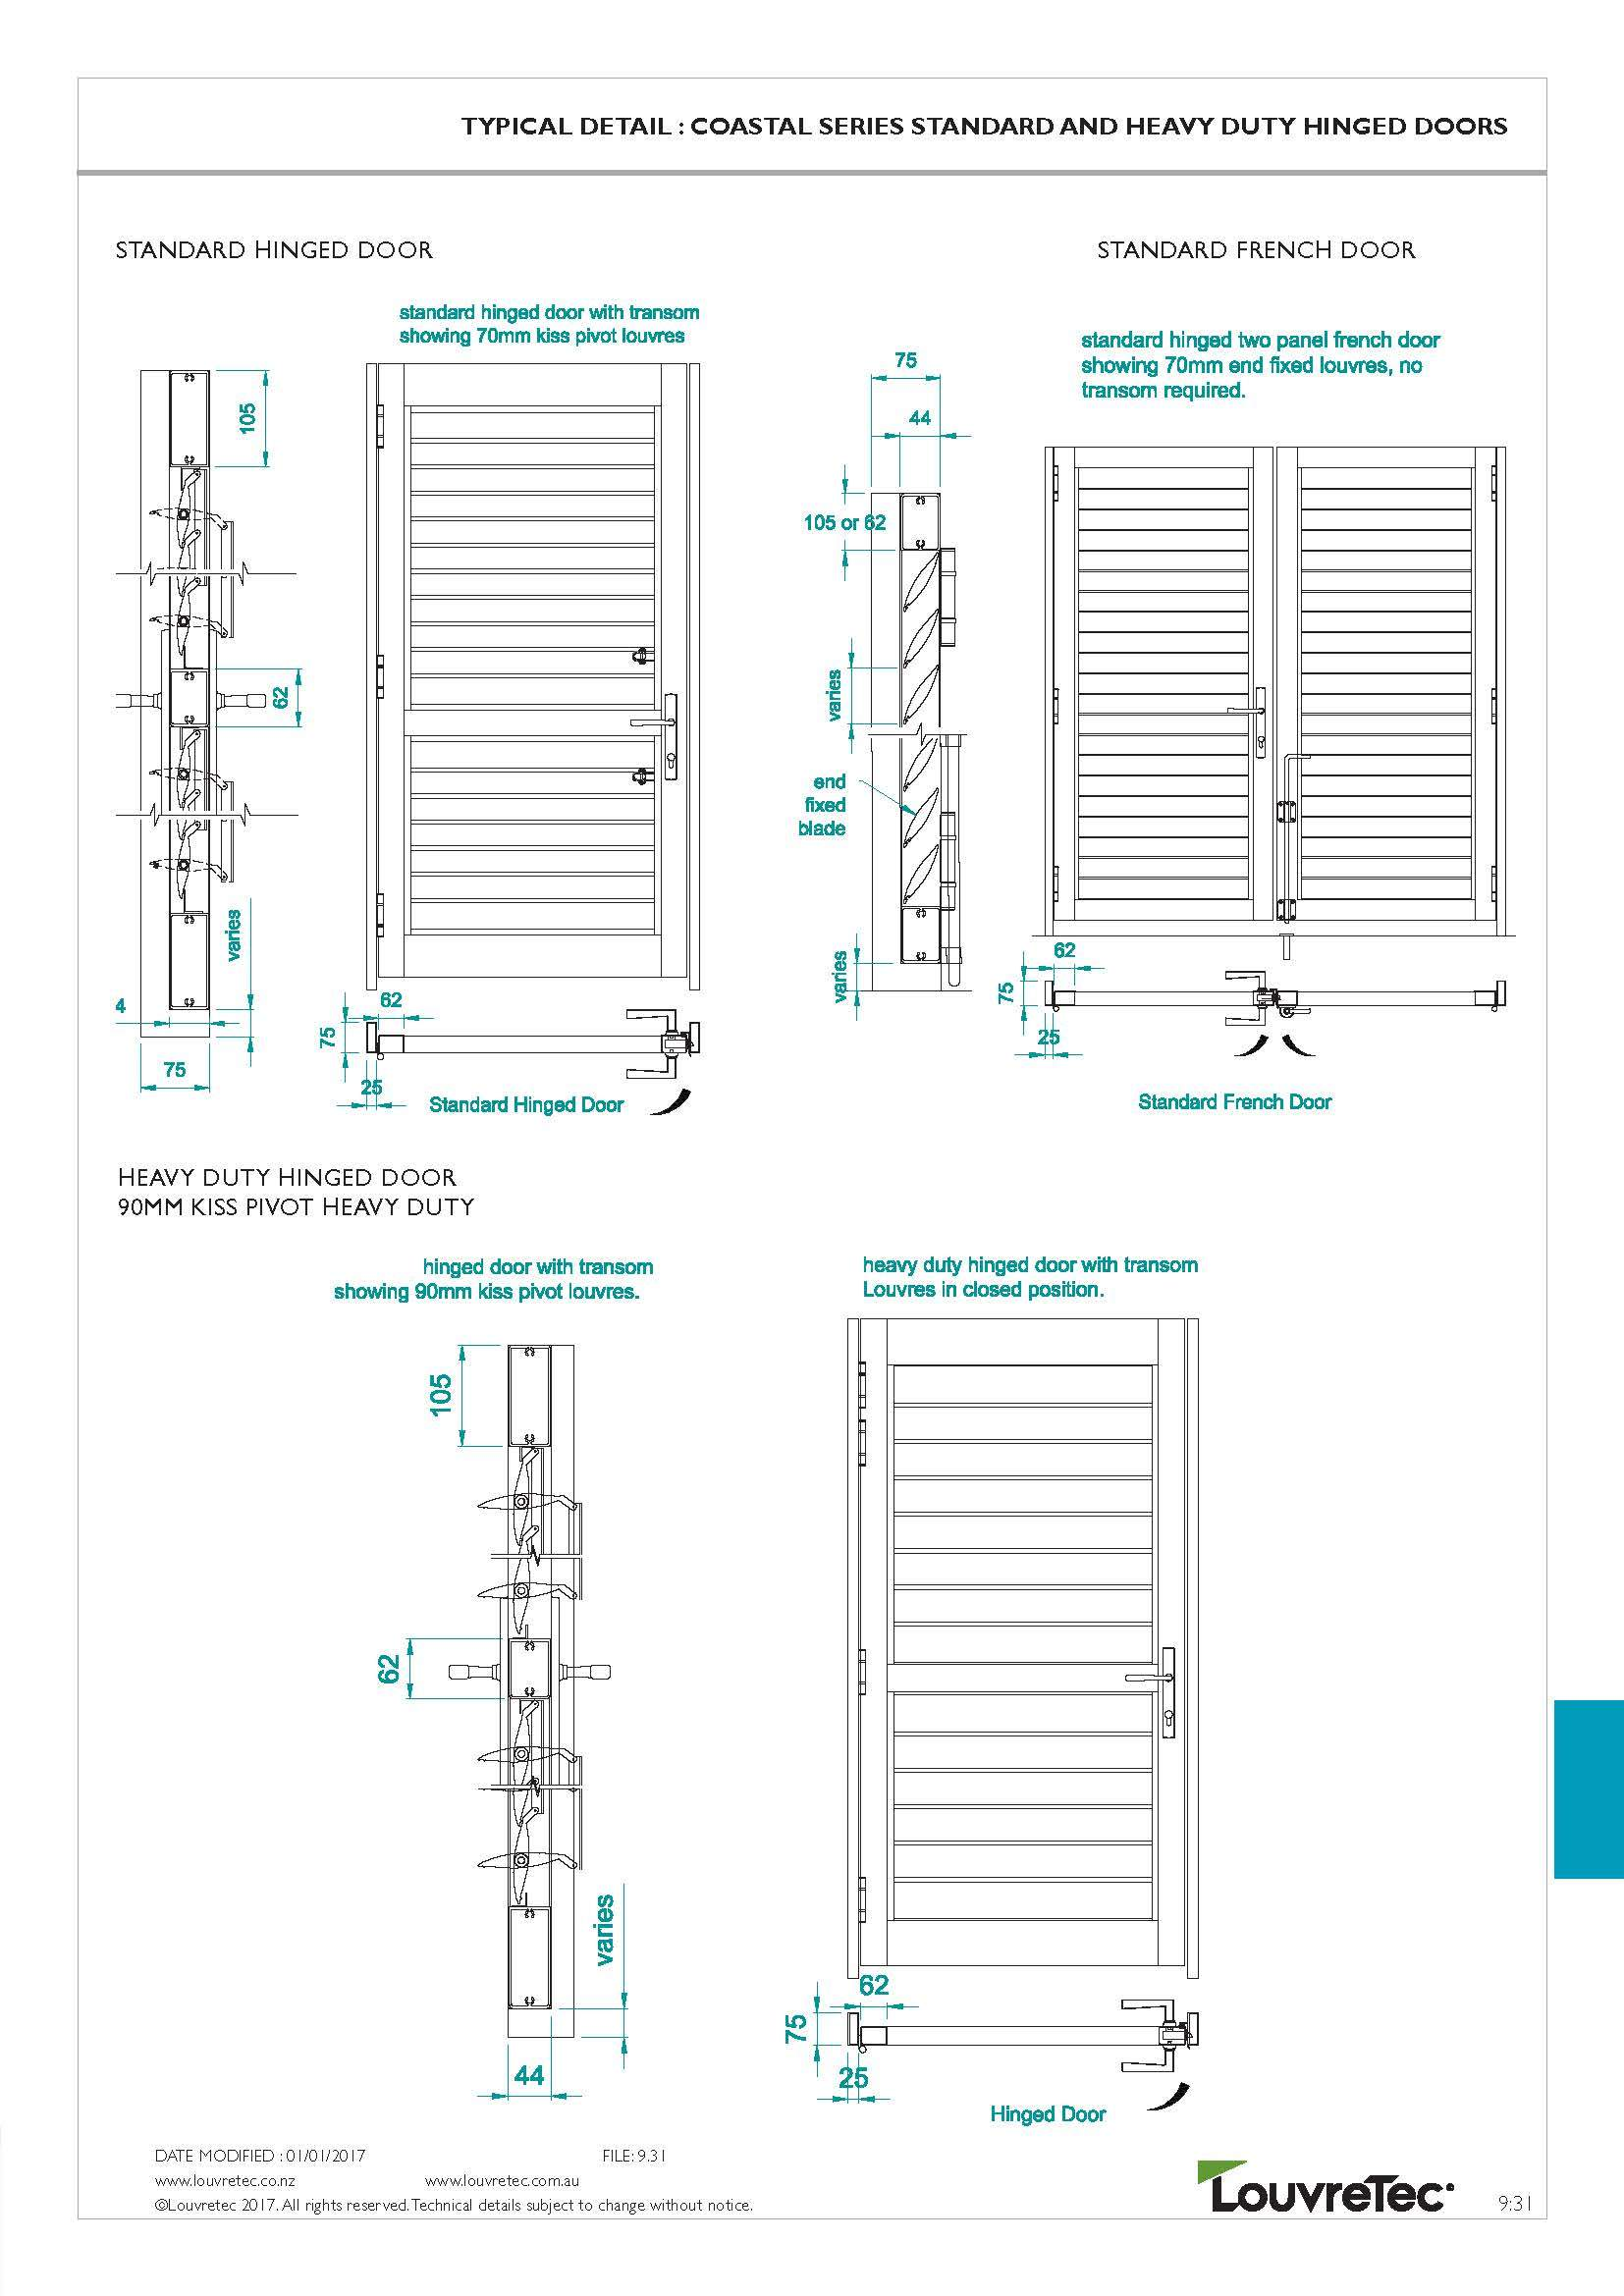 Standard & Heavy Duty Hinged Doors Typical Det|9.31